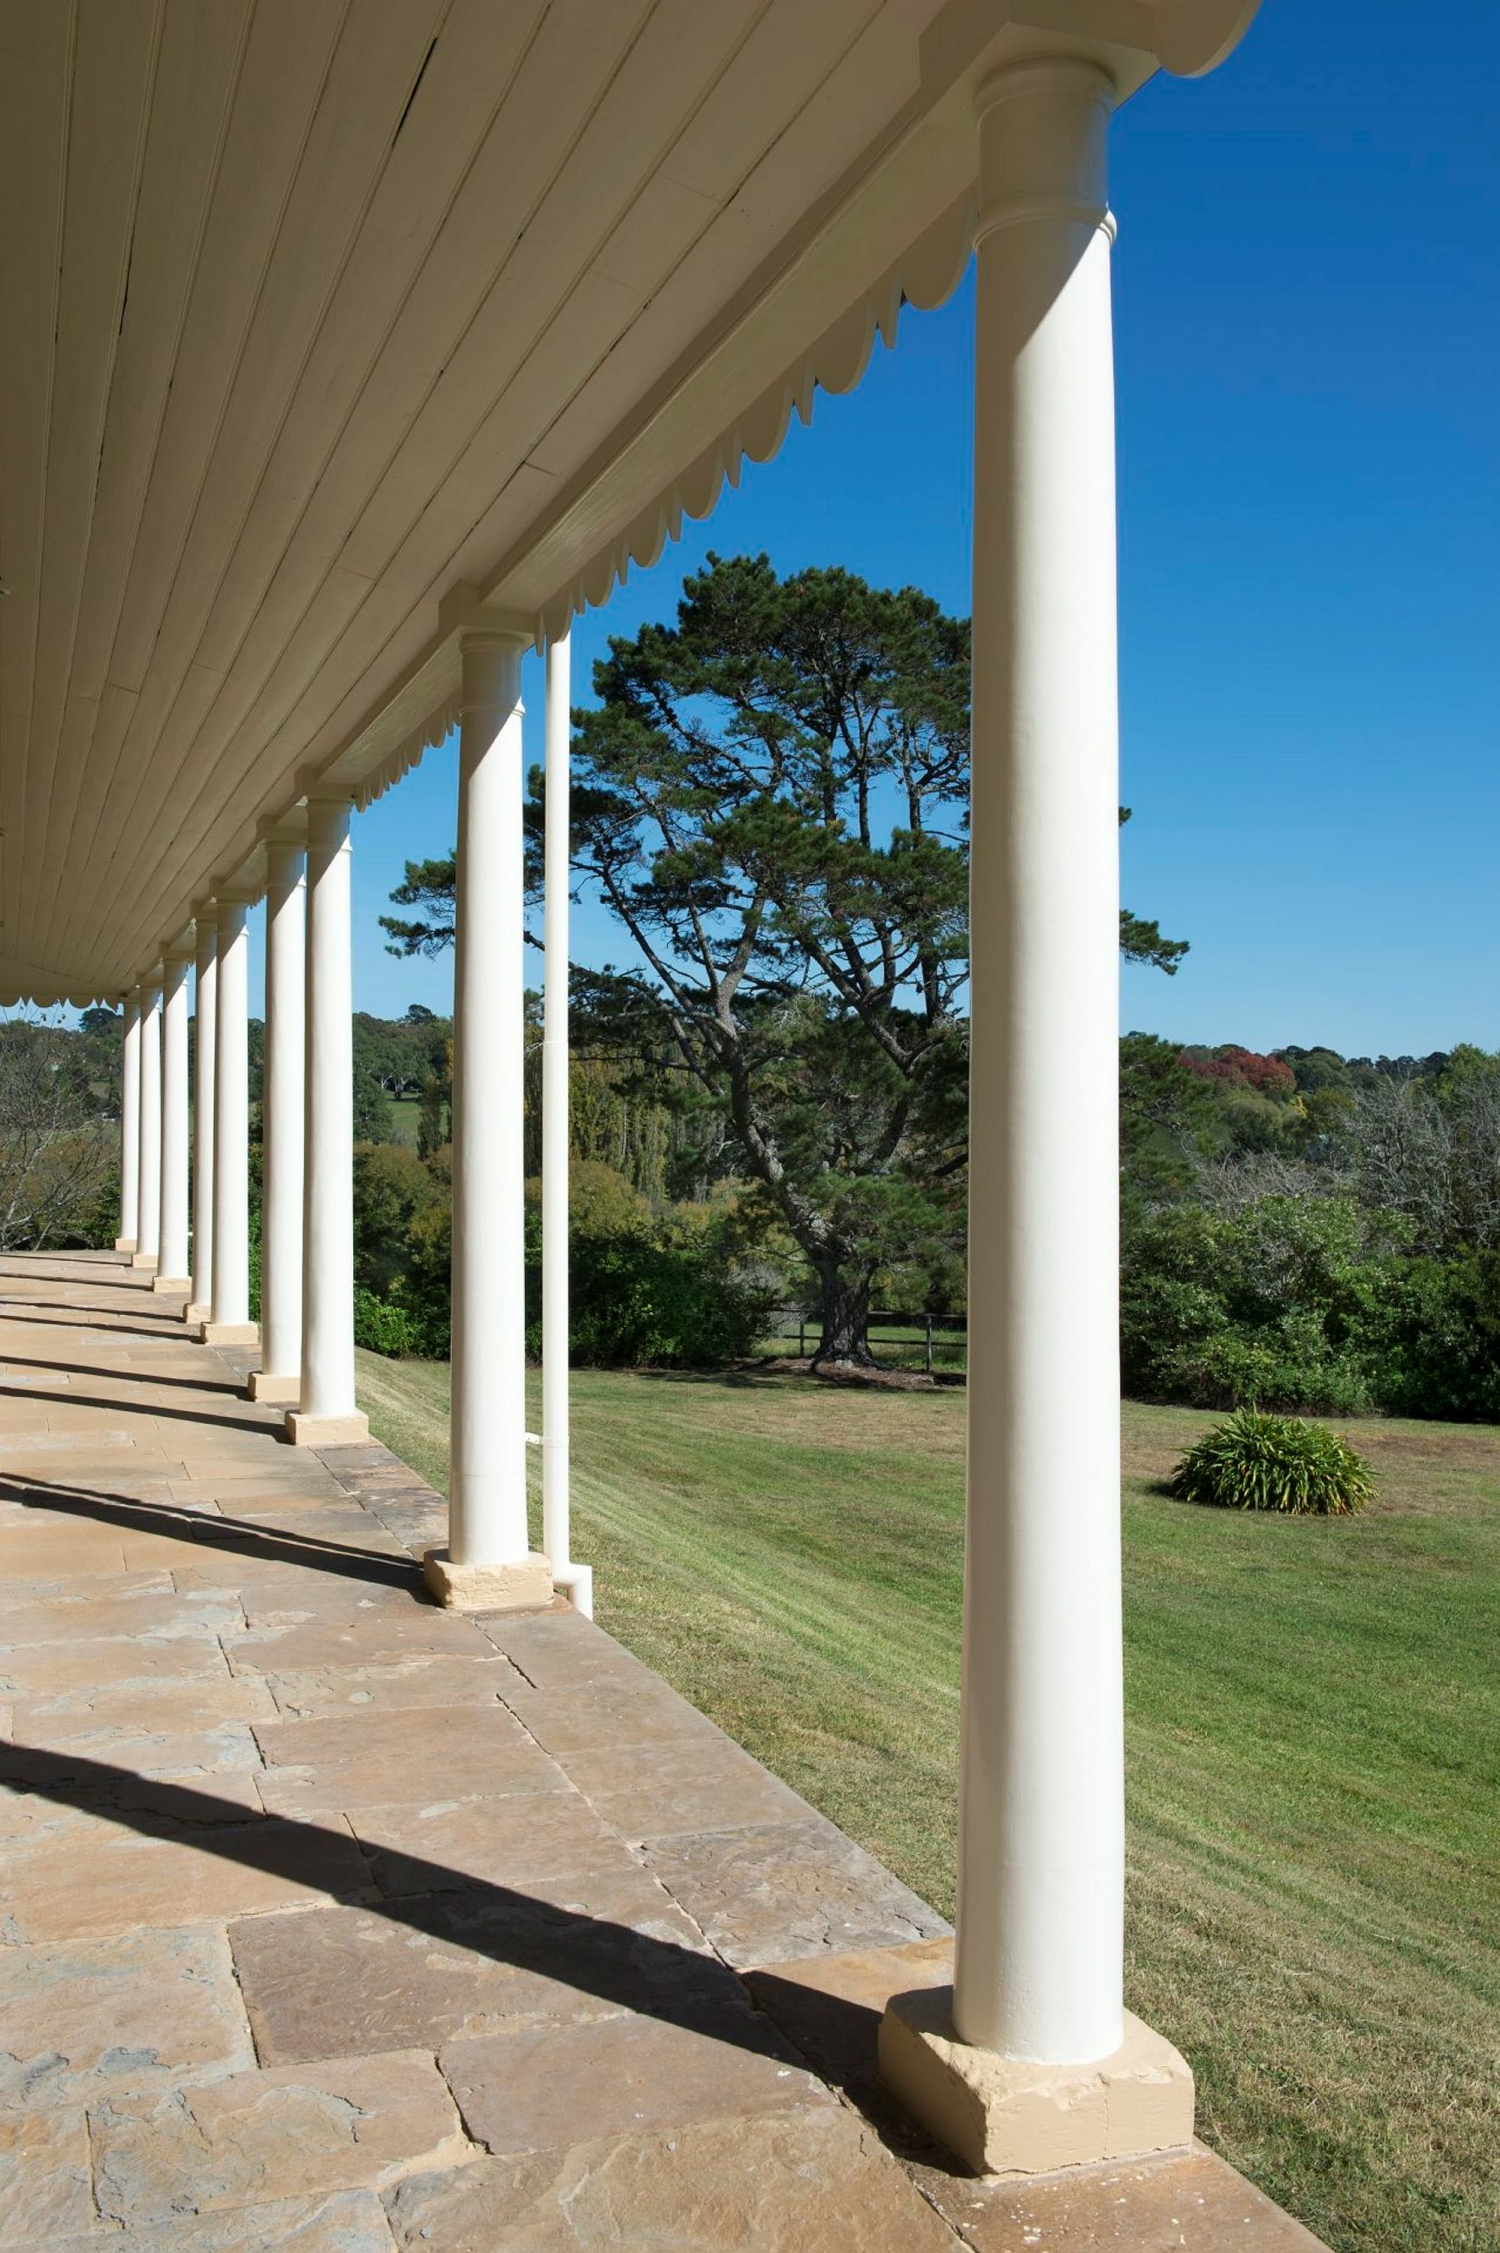 White columned verandah at throsby park with pasture and bushlands in the distance.